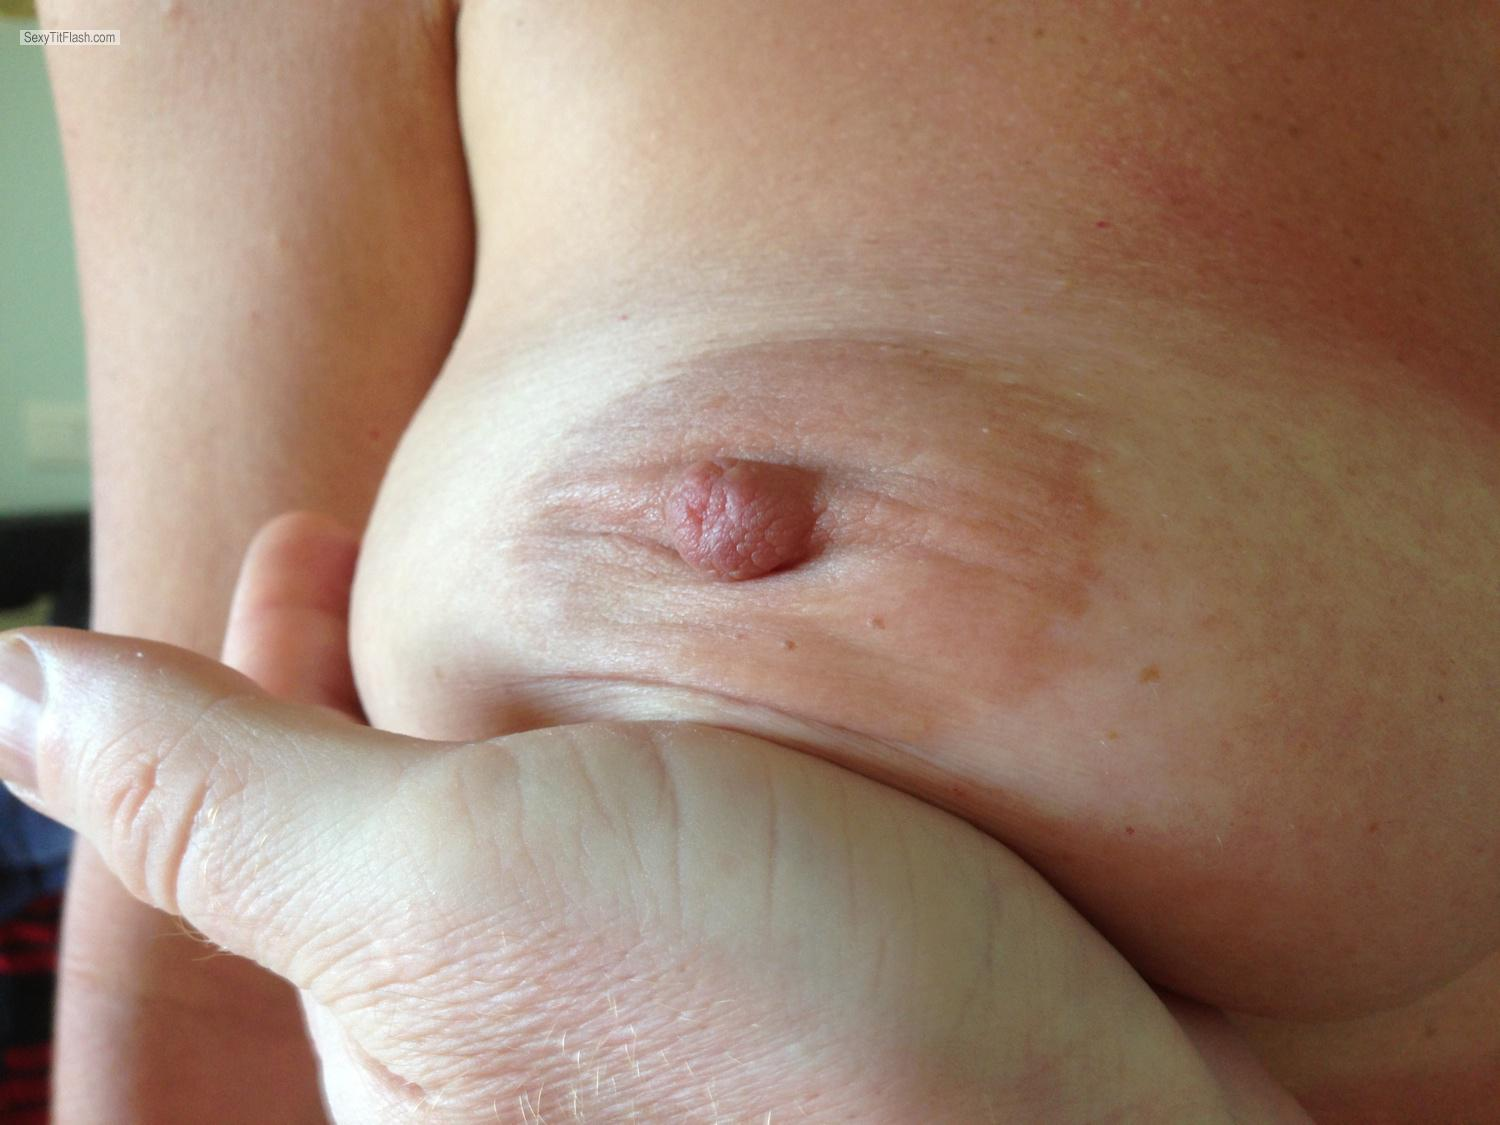 Tit Flash: Big Tits By IPhone - Pascha7468 from Germany